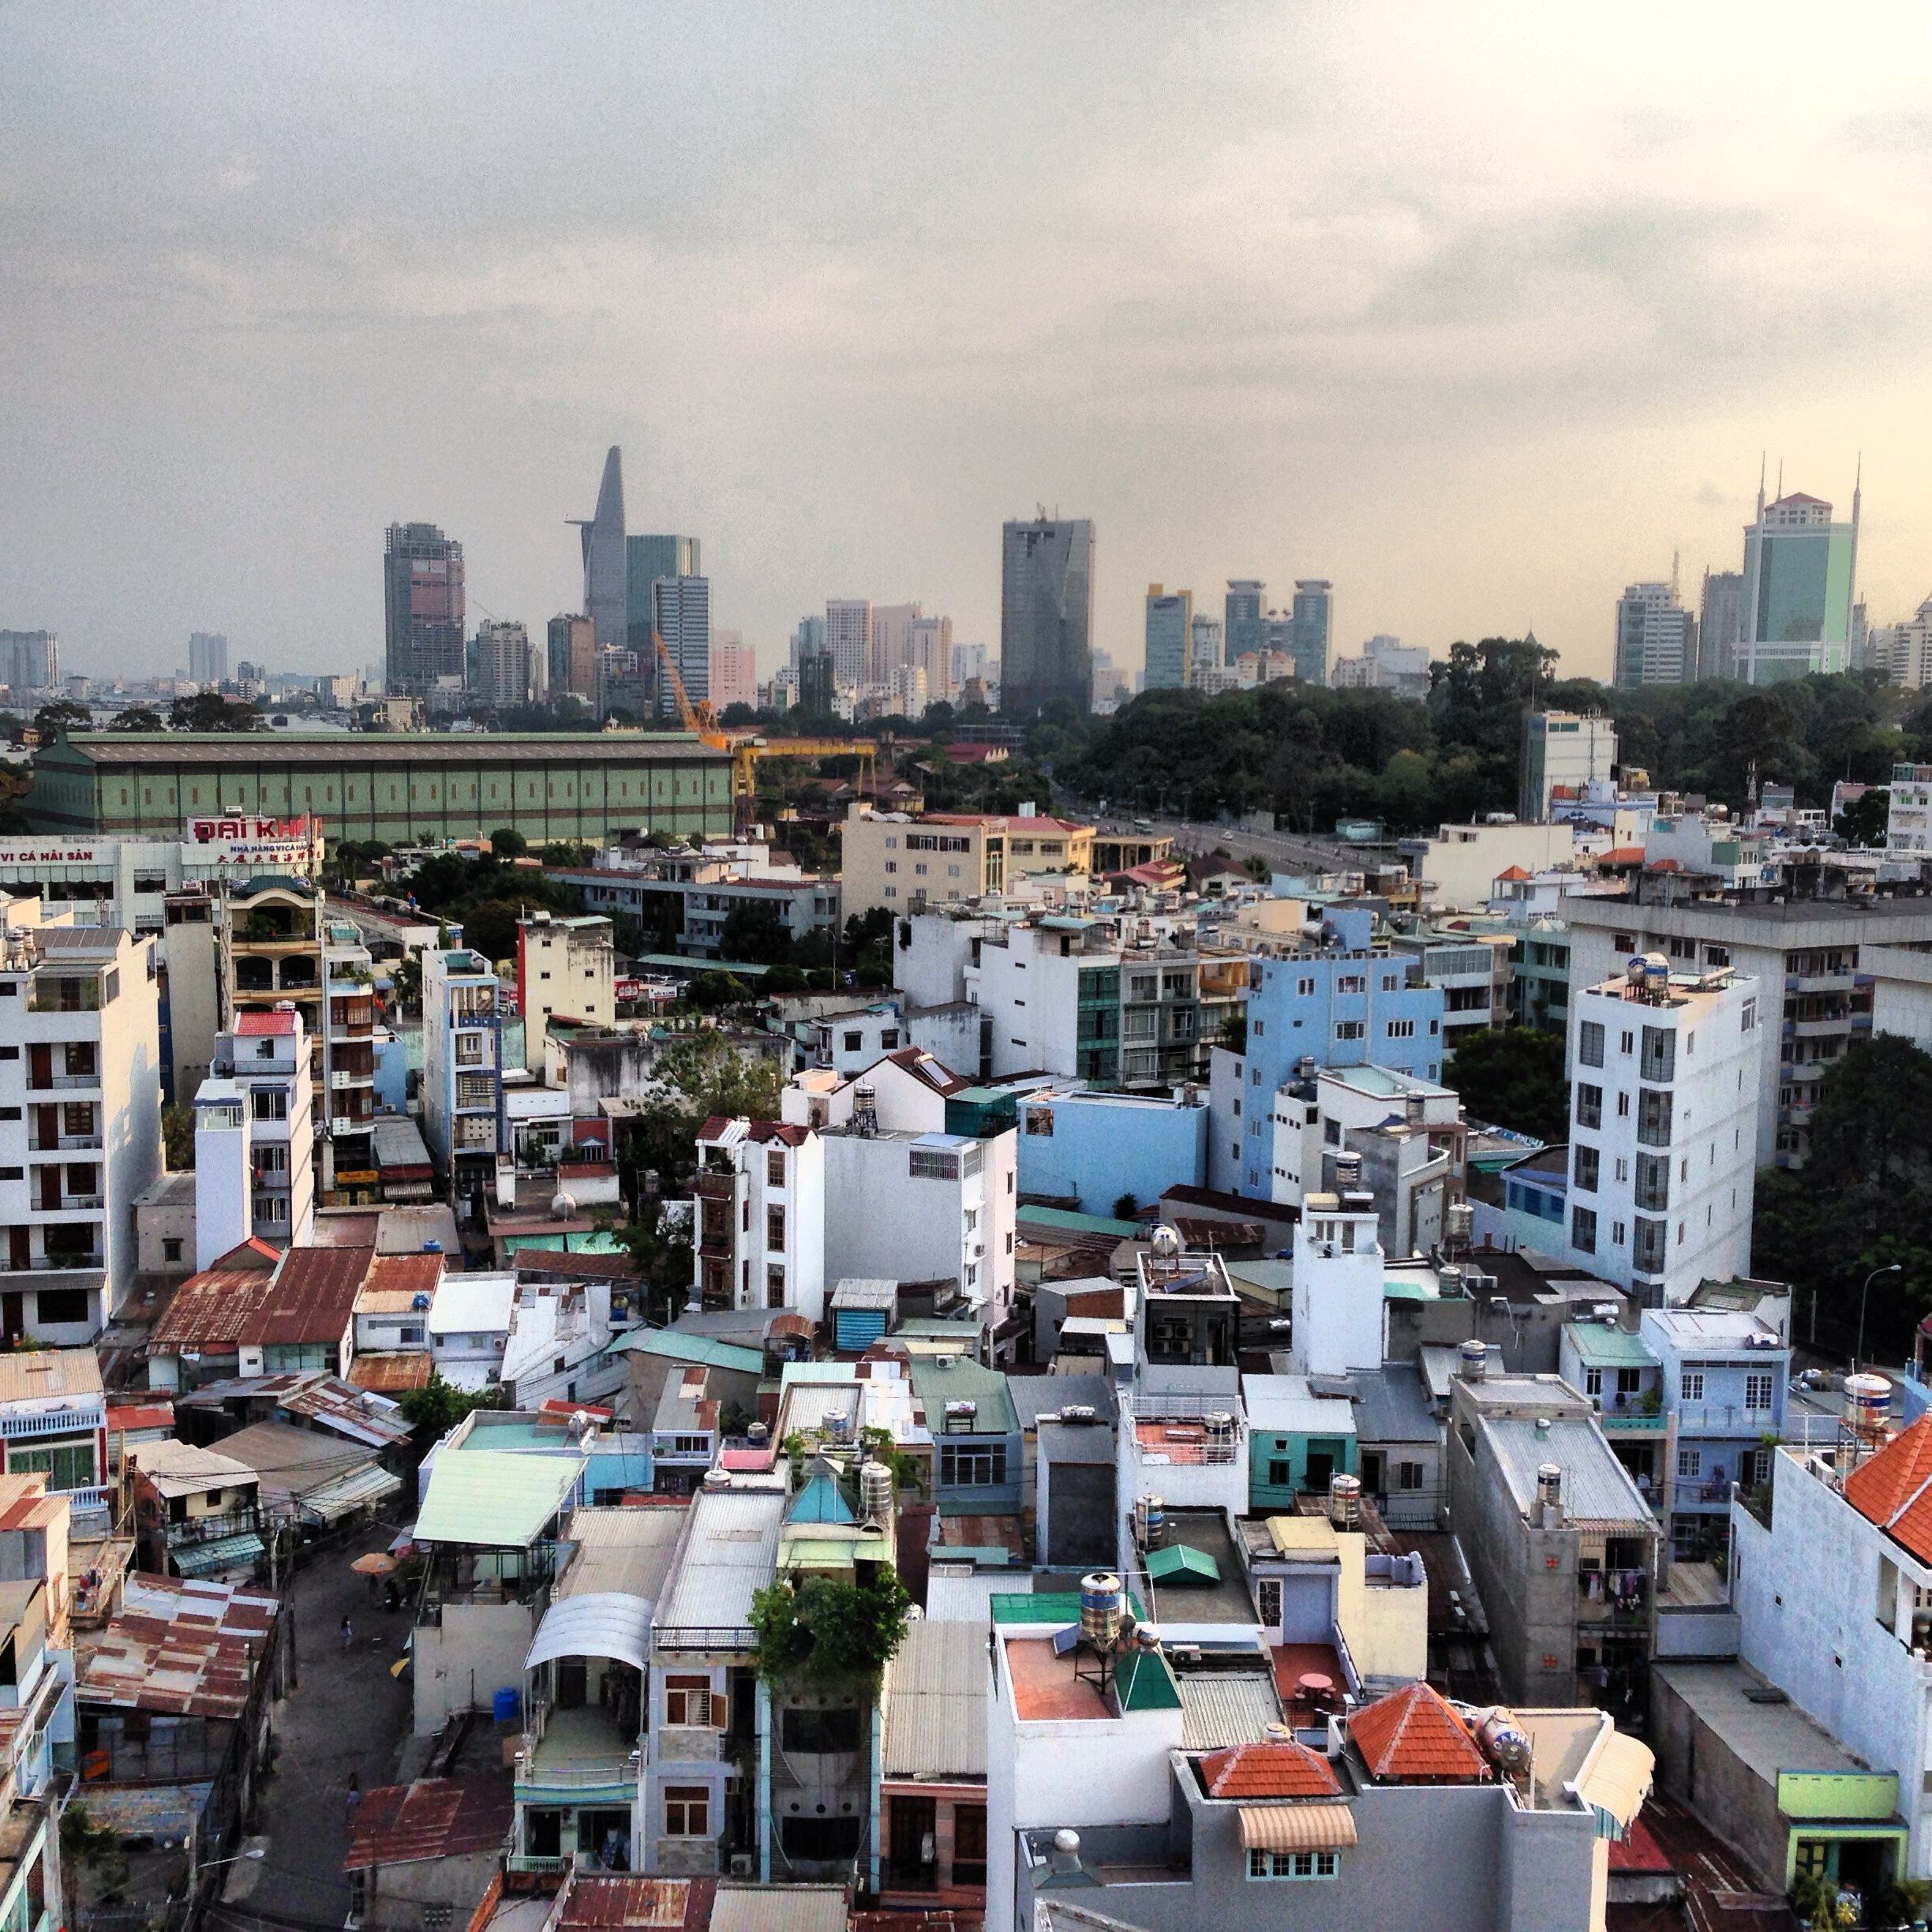 Saigon, my new home for now. Tons of things to see and learn, I'll explore the cafe culture and see the potential for a locally-based Specialty Coffee scene.